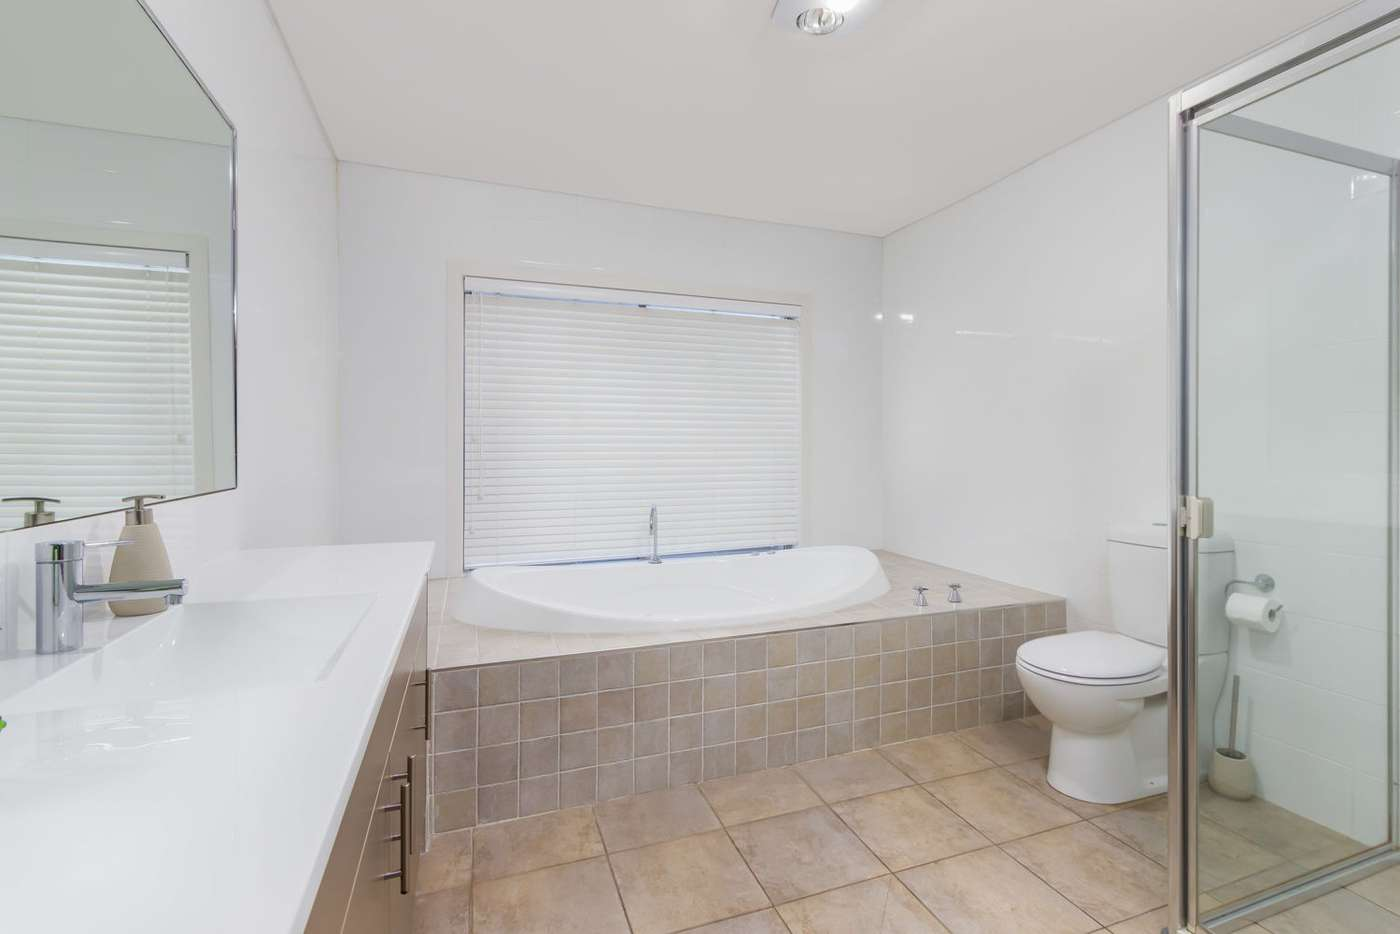 Sixth view of Homely house listing, 20 Ashtead Parade, Stanhope Gardens NSW 2768